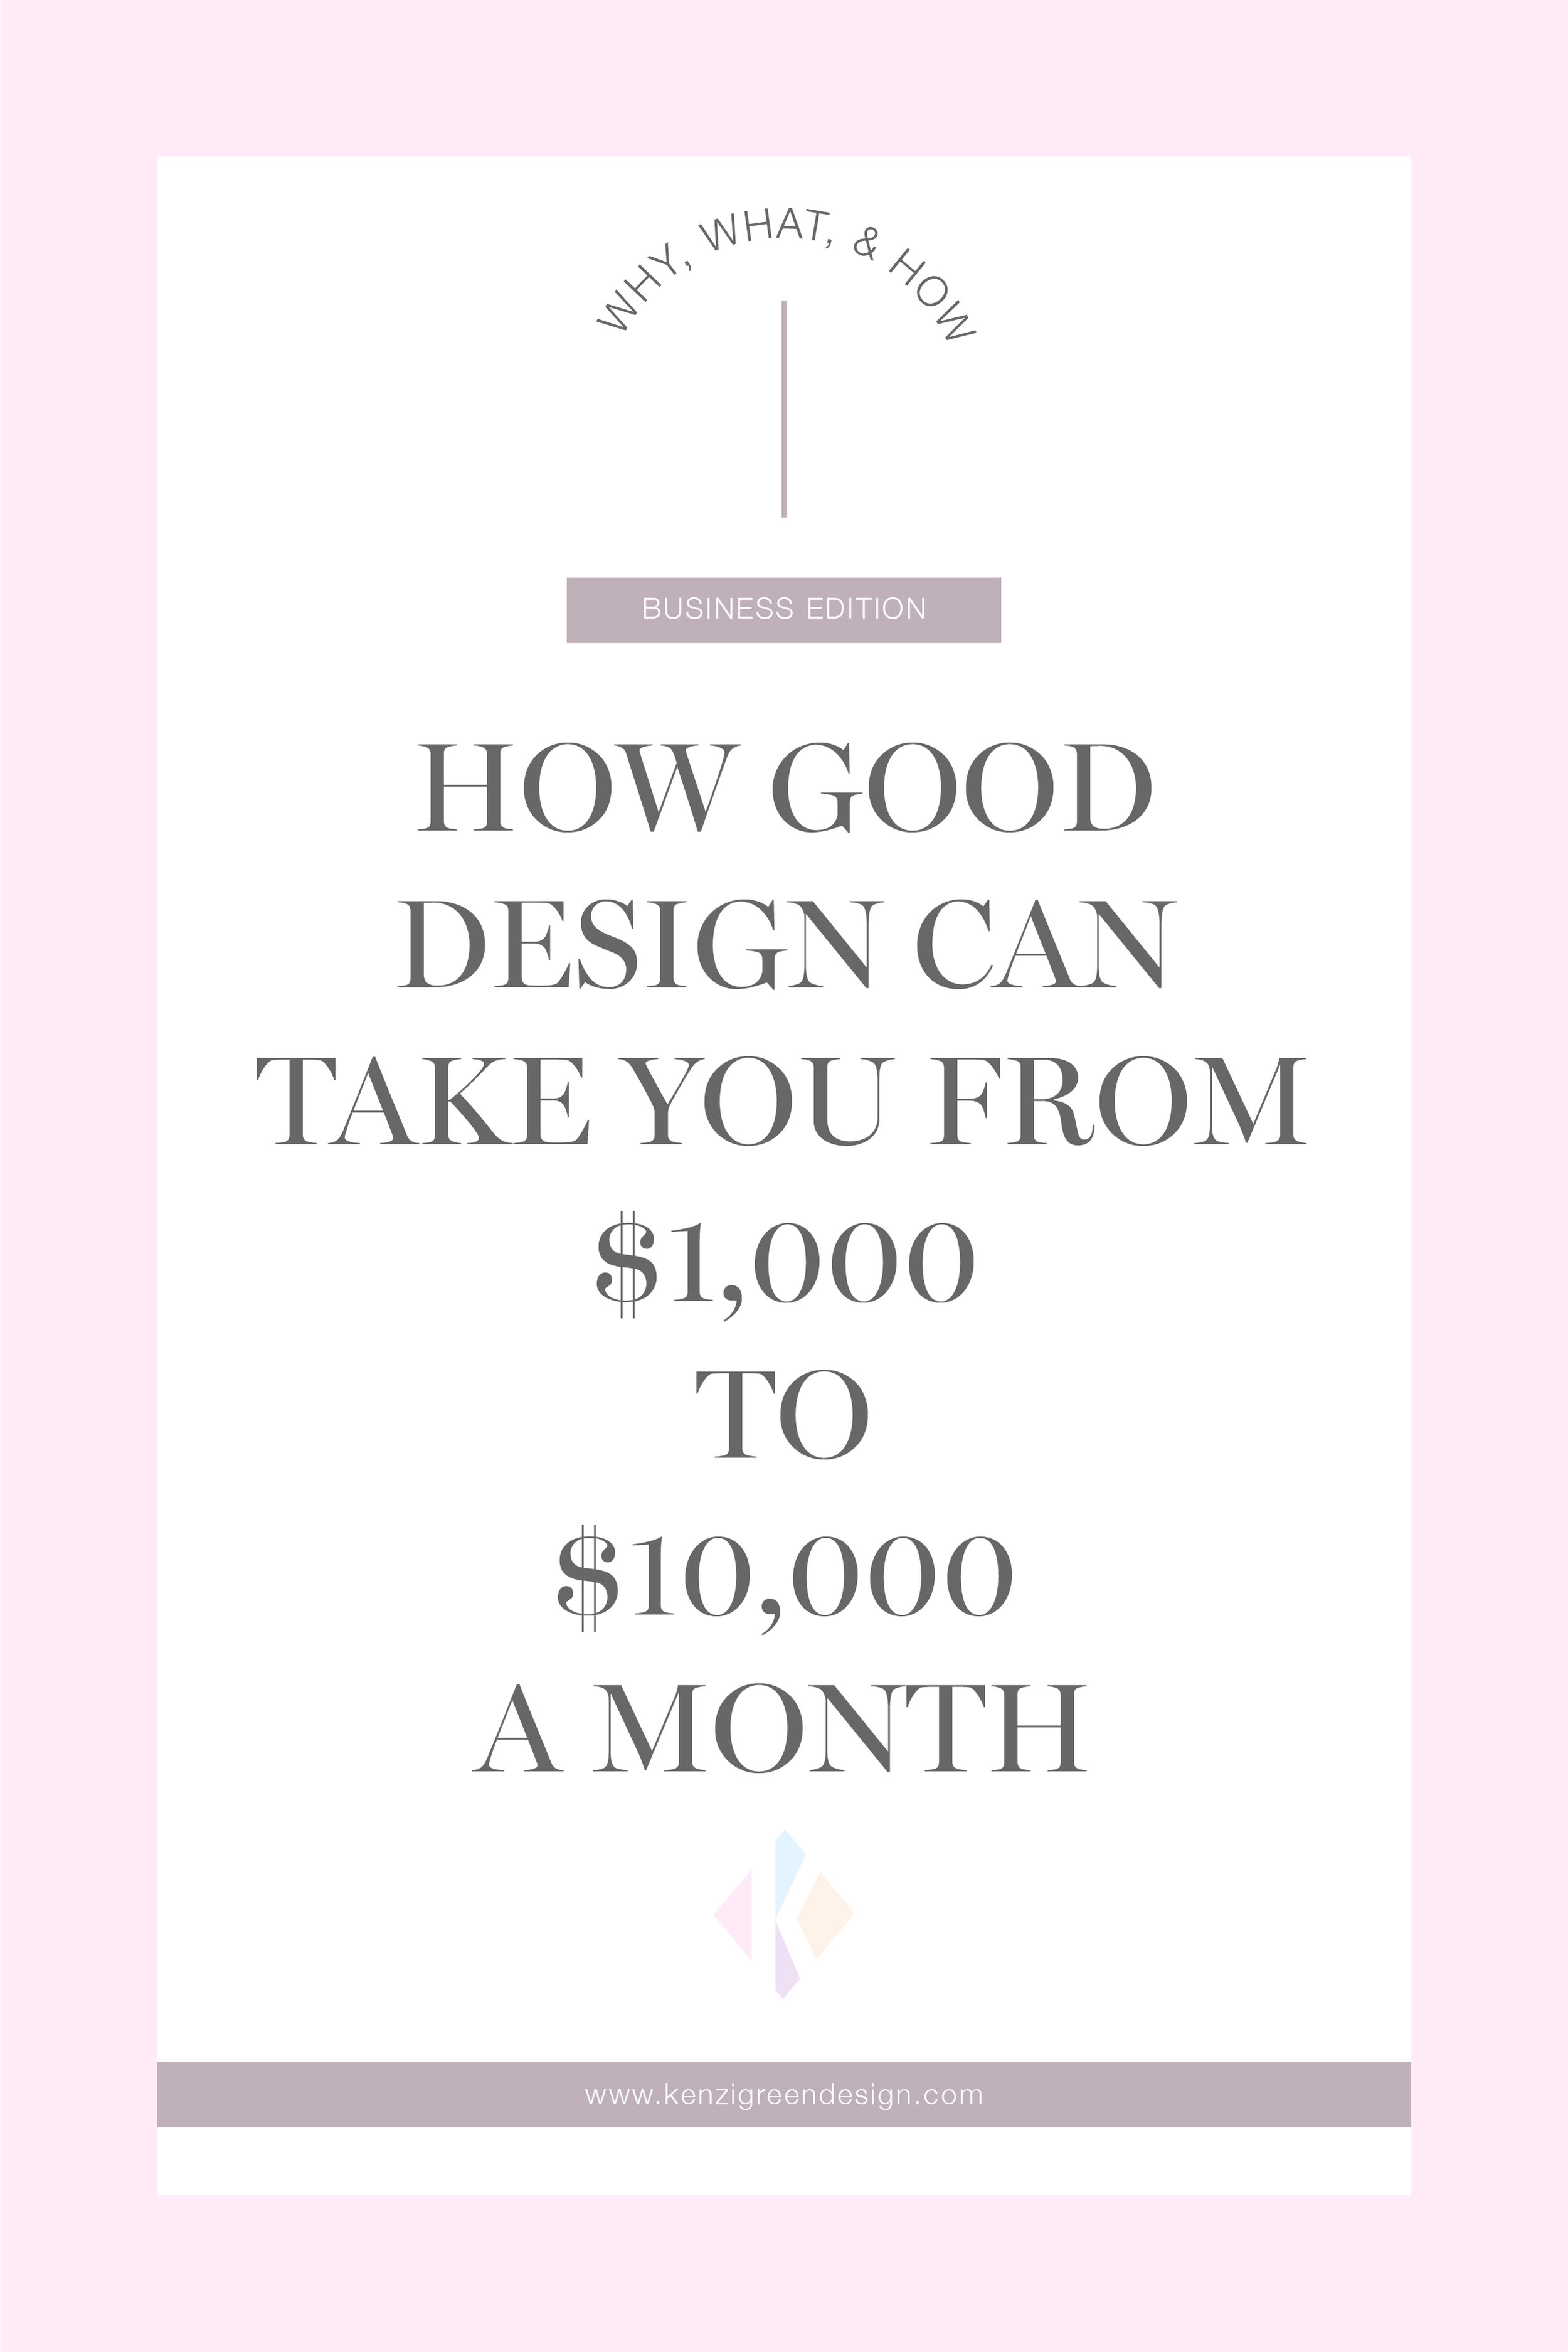 How Good Design Can Take You From 1,000 to 10,000 A Month #branding #design #businesstips